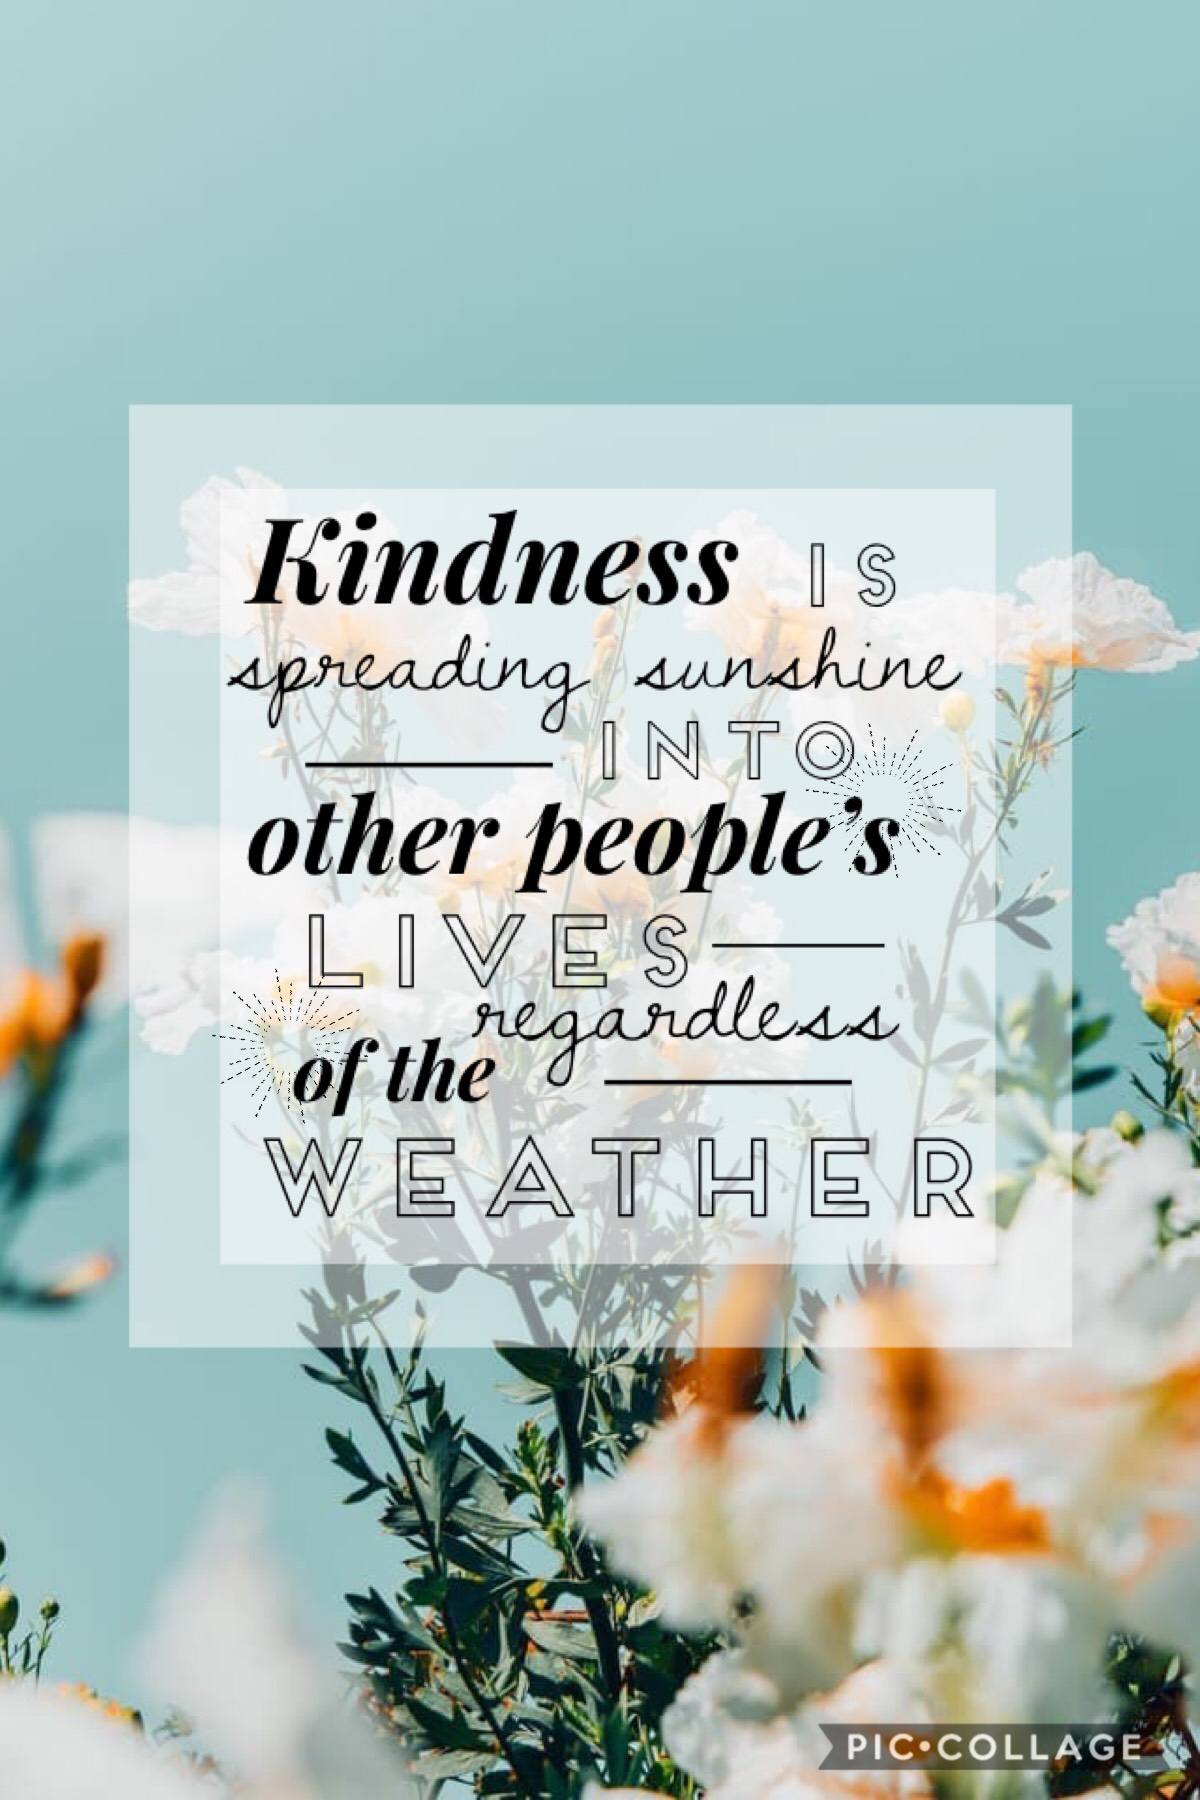 🌼Kindness🌼 Is spreading sunshine into other people's lives regardless of the weather.  ☀️☀️☀️